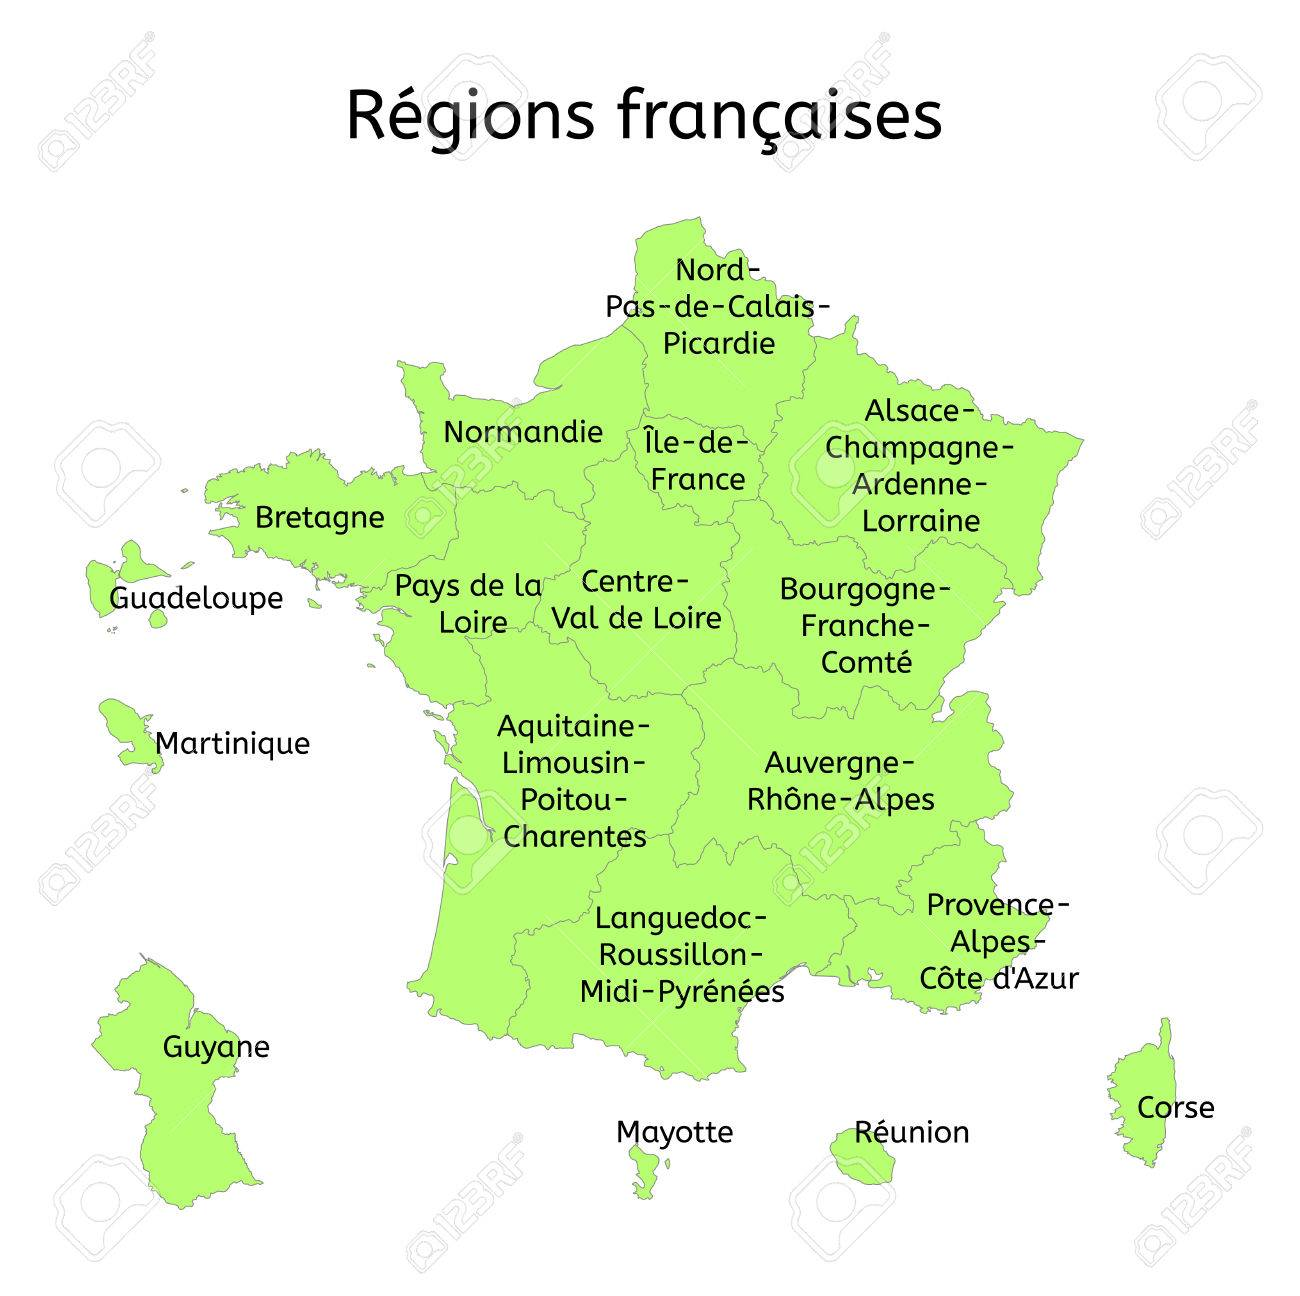 Map Of France New Regions.France Administrative Map With New Regions With Original French